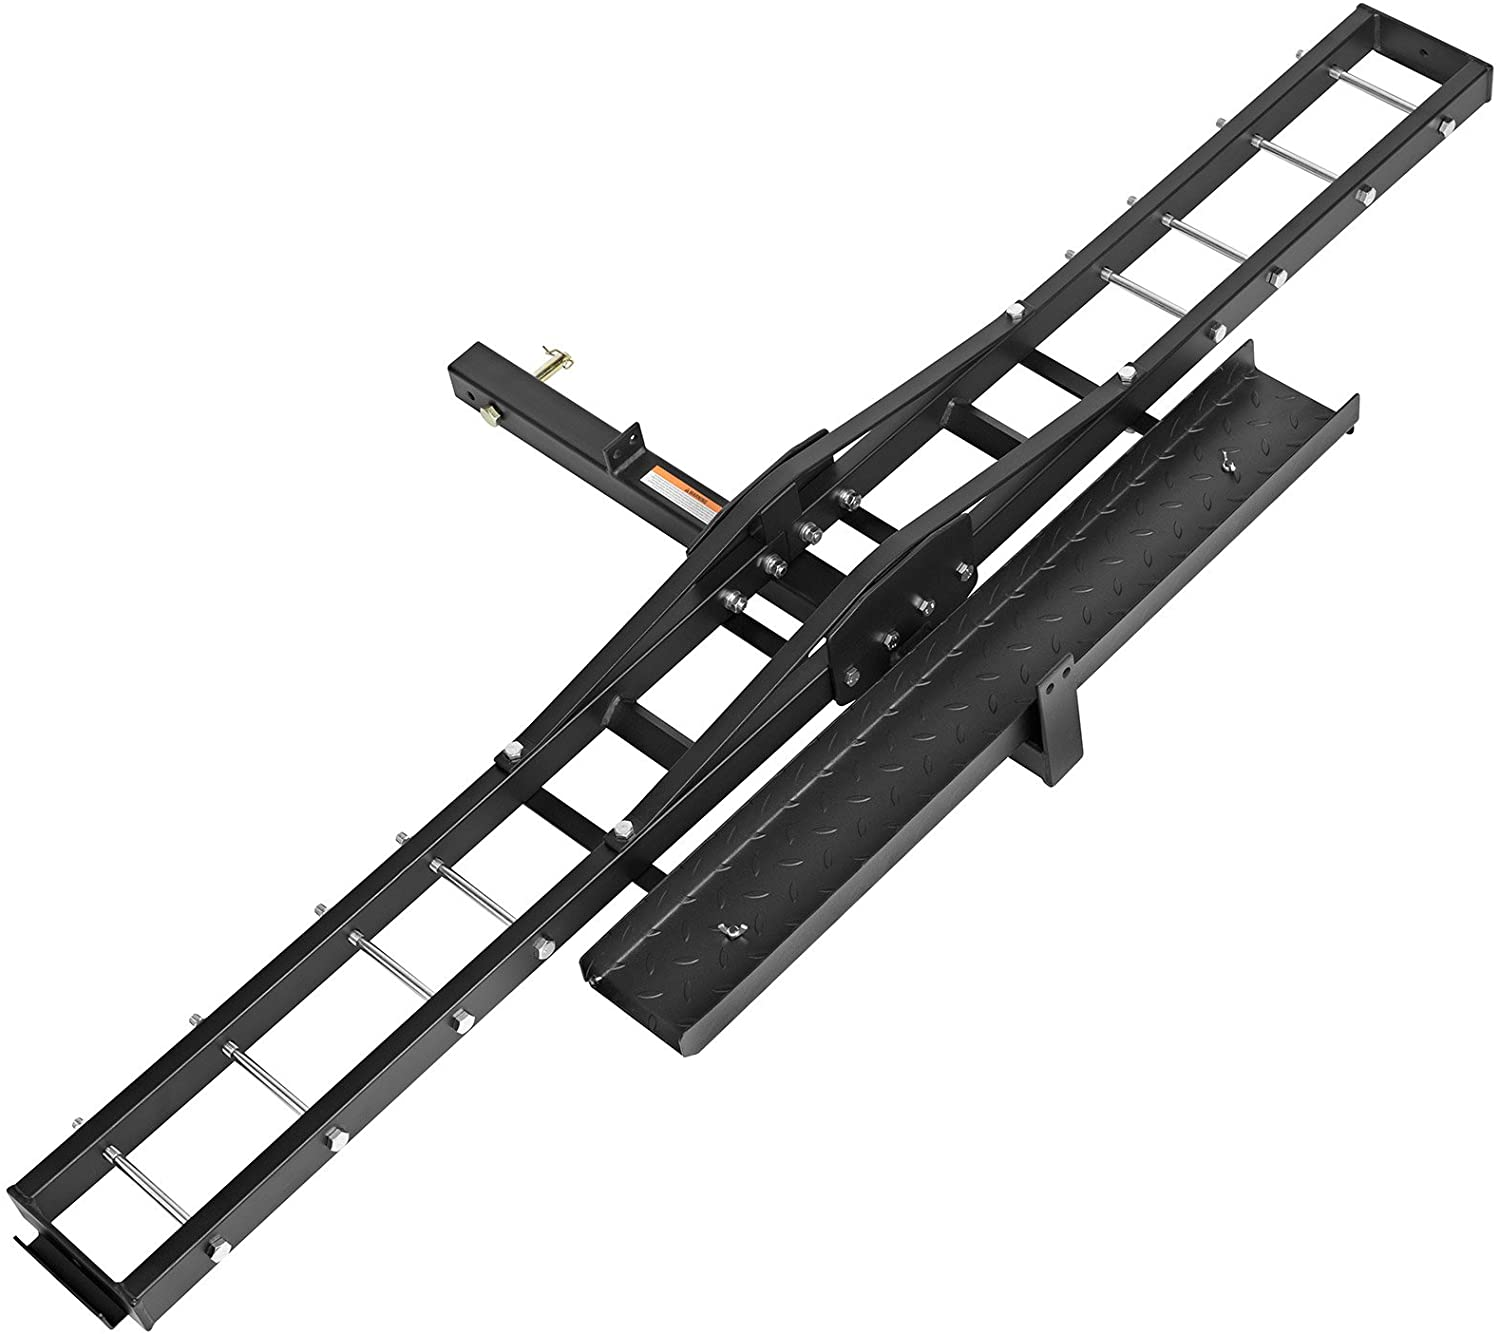 8. Direct Aftermarket Steel Motorcycle Scooter Dirt Bike Rack Carrier Hauler